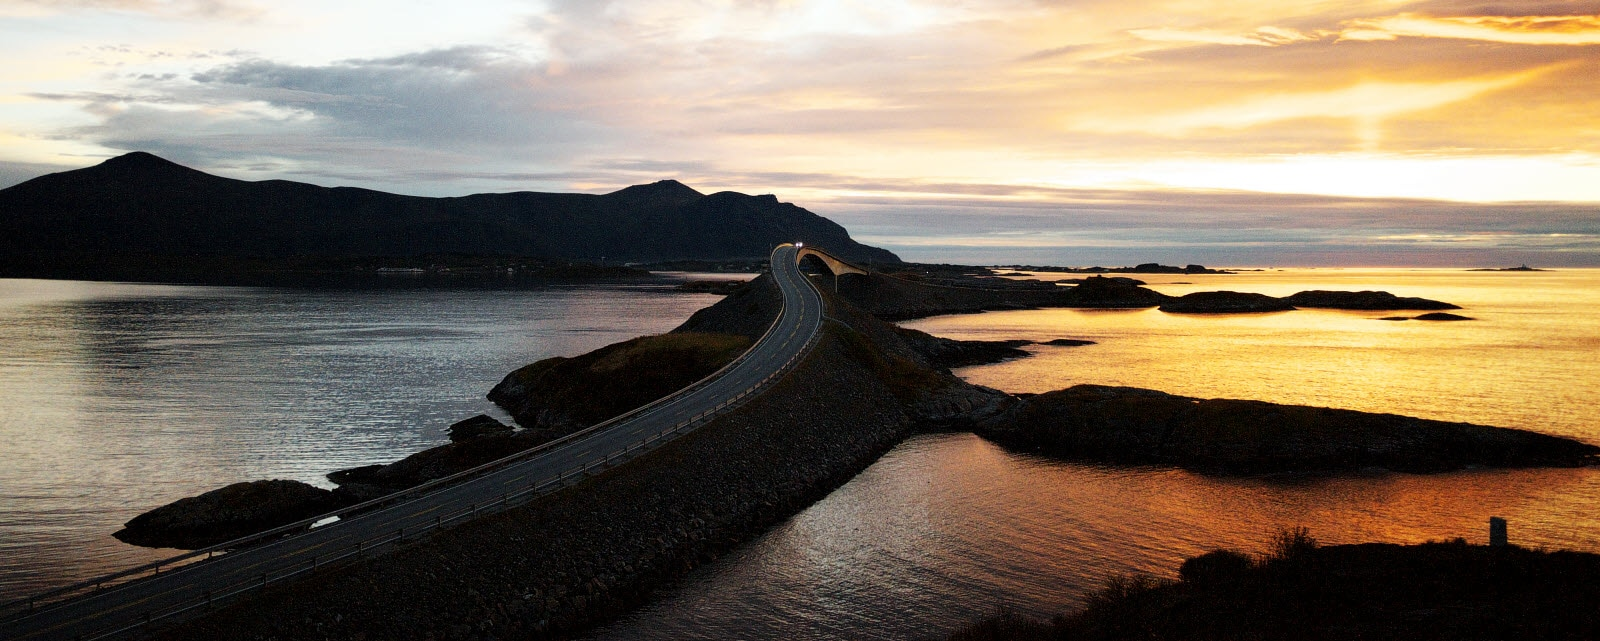 Norway and Molde in the sunset. The famouse Atlantic highway with its winding road and bridges.